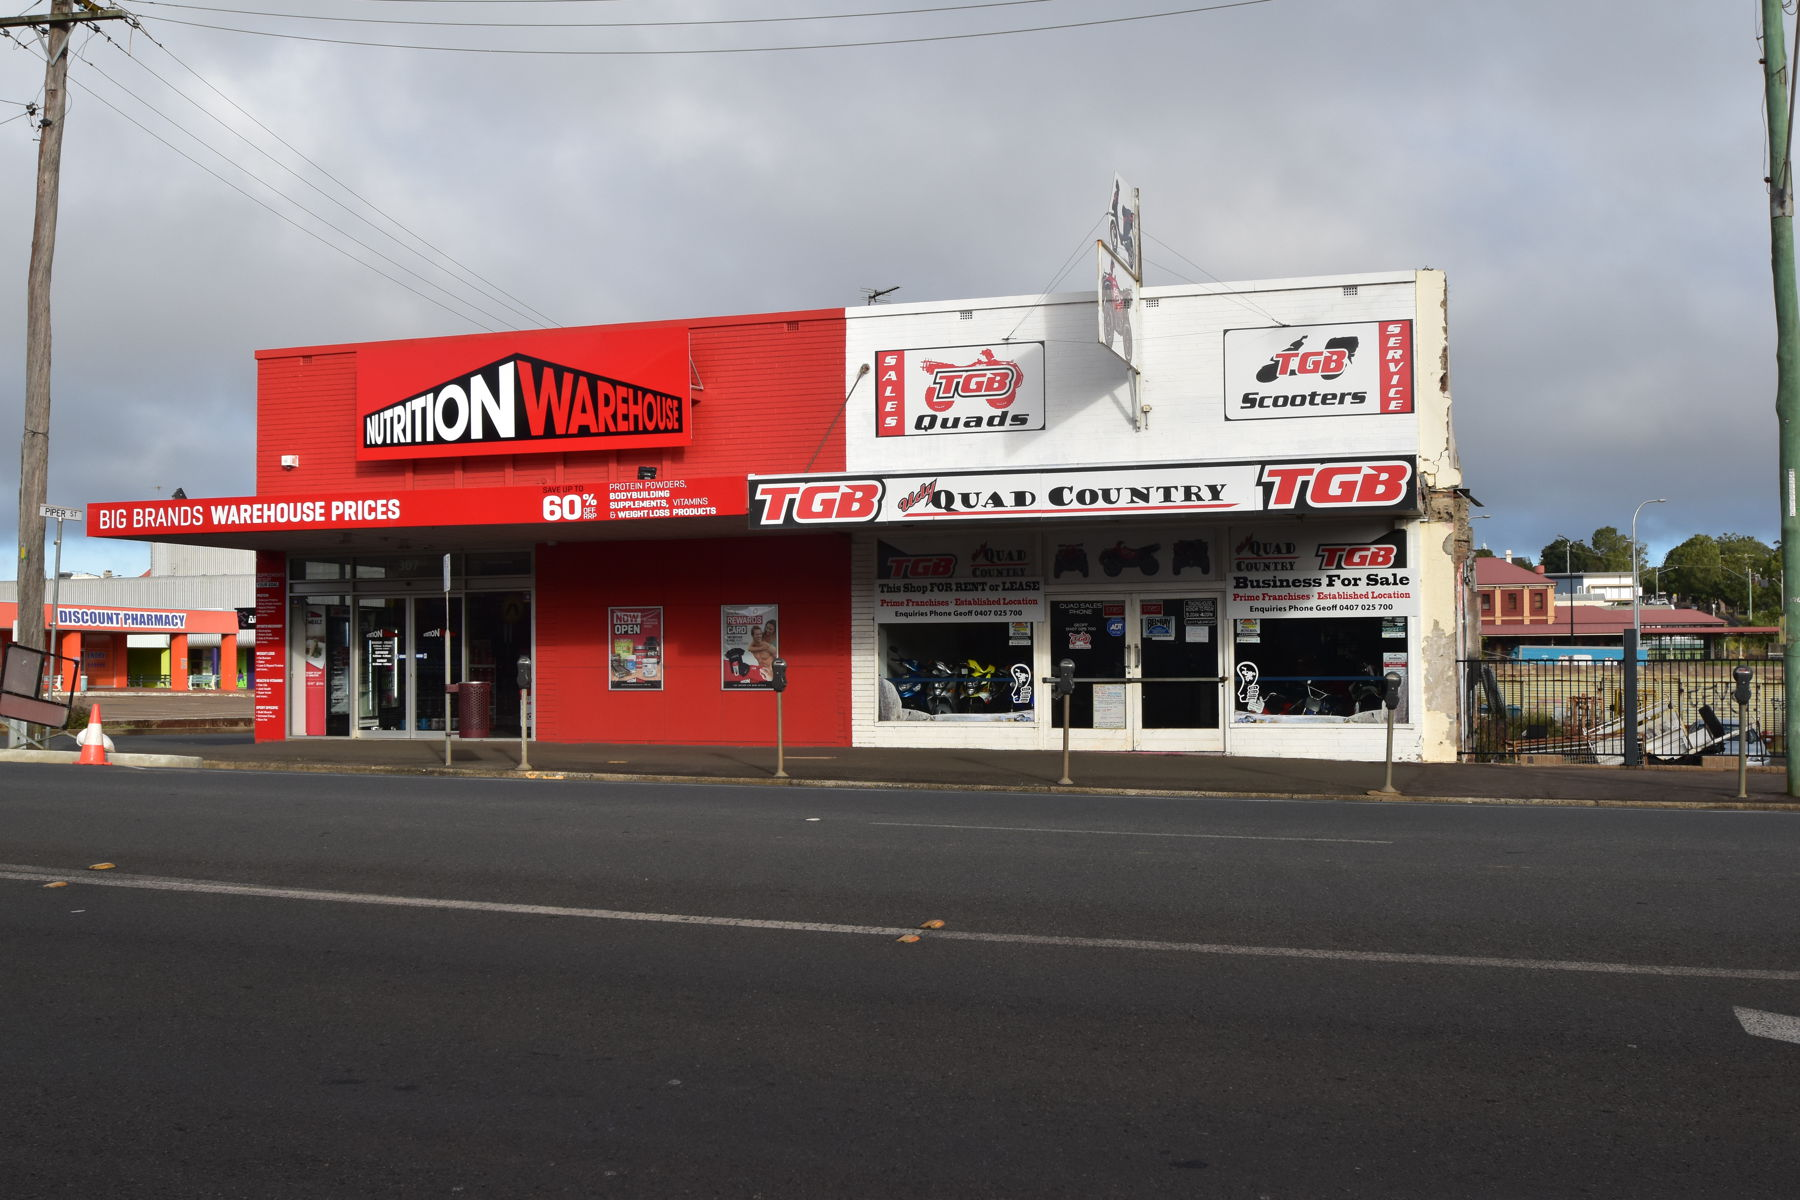 Property For Rent in Toowoomba City